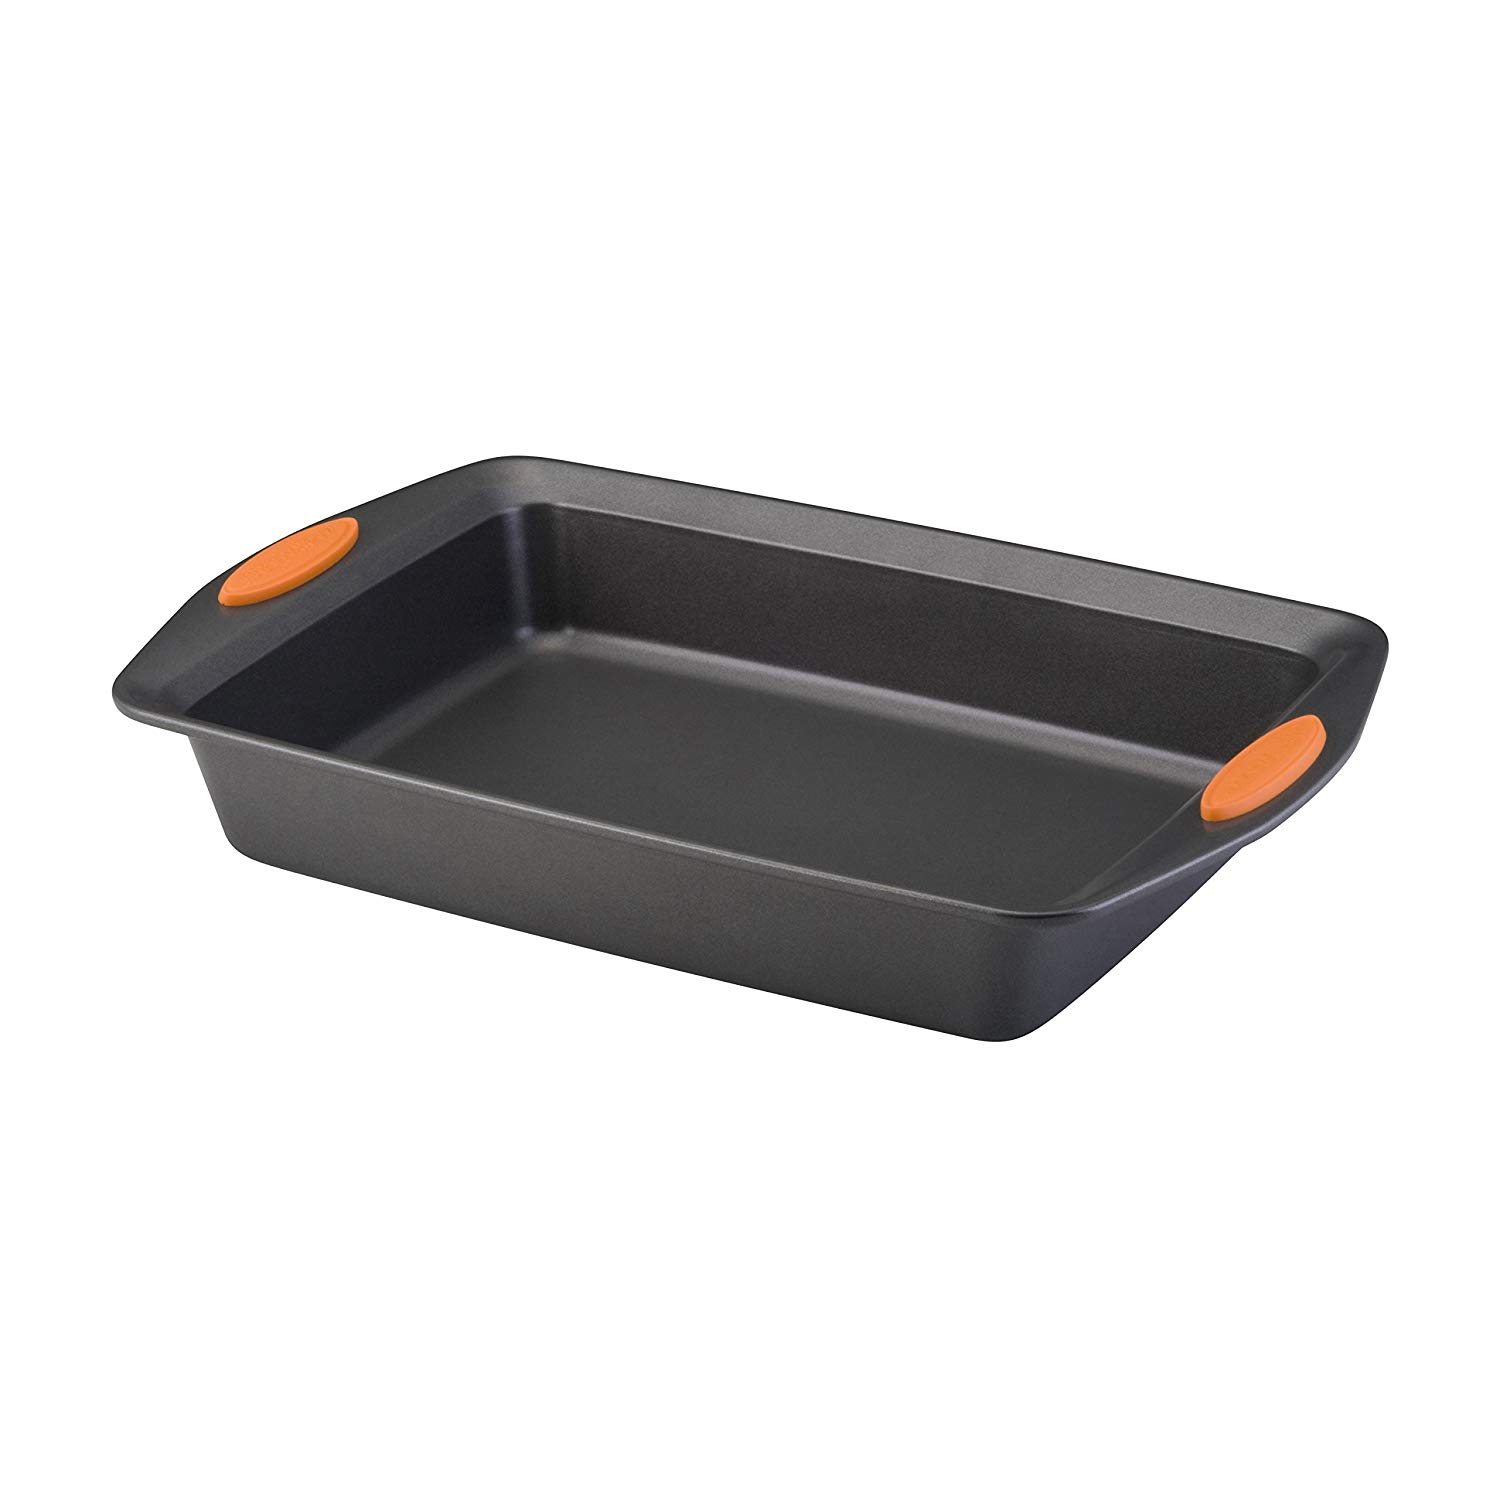 Rachael-Ray-Nonstick-Bakeware-Rectangle-Cake-Pan